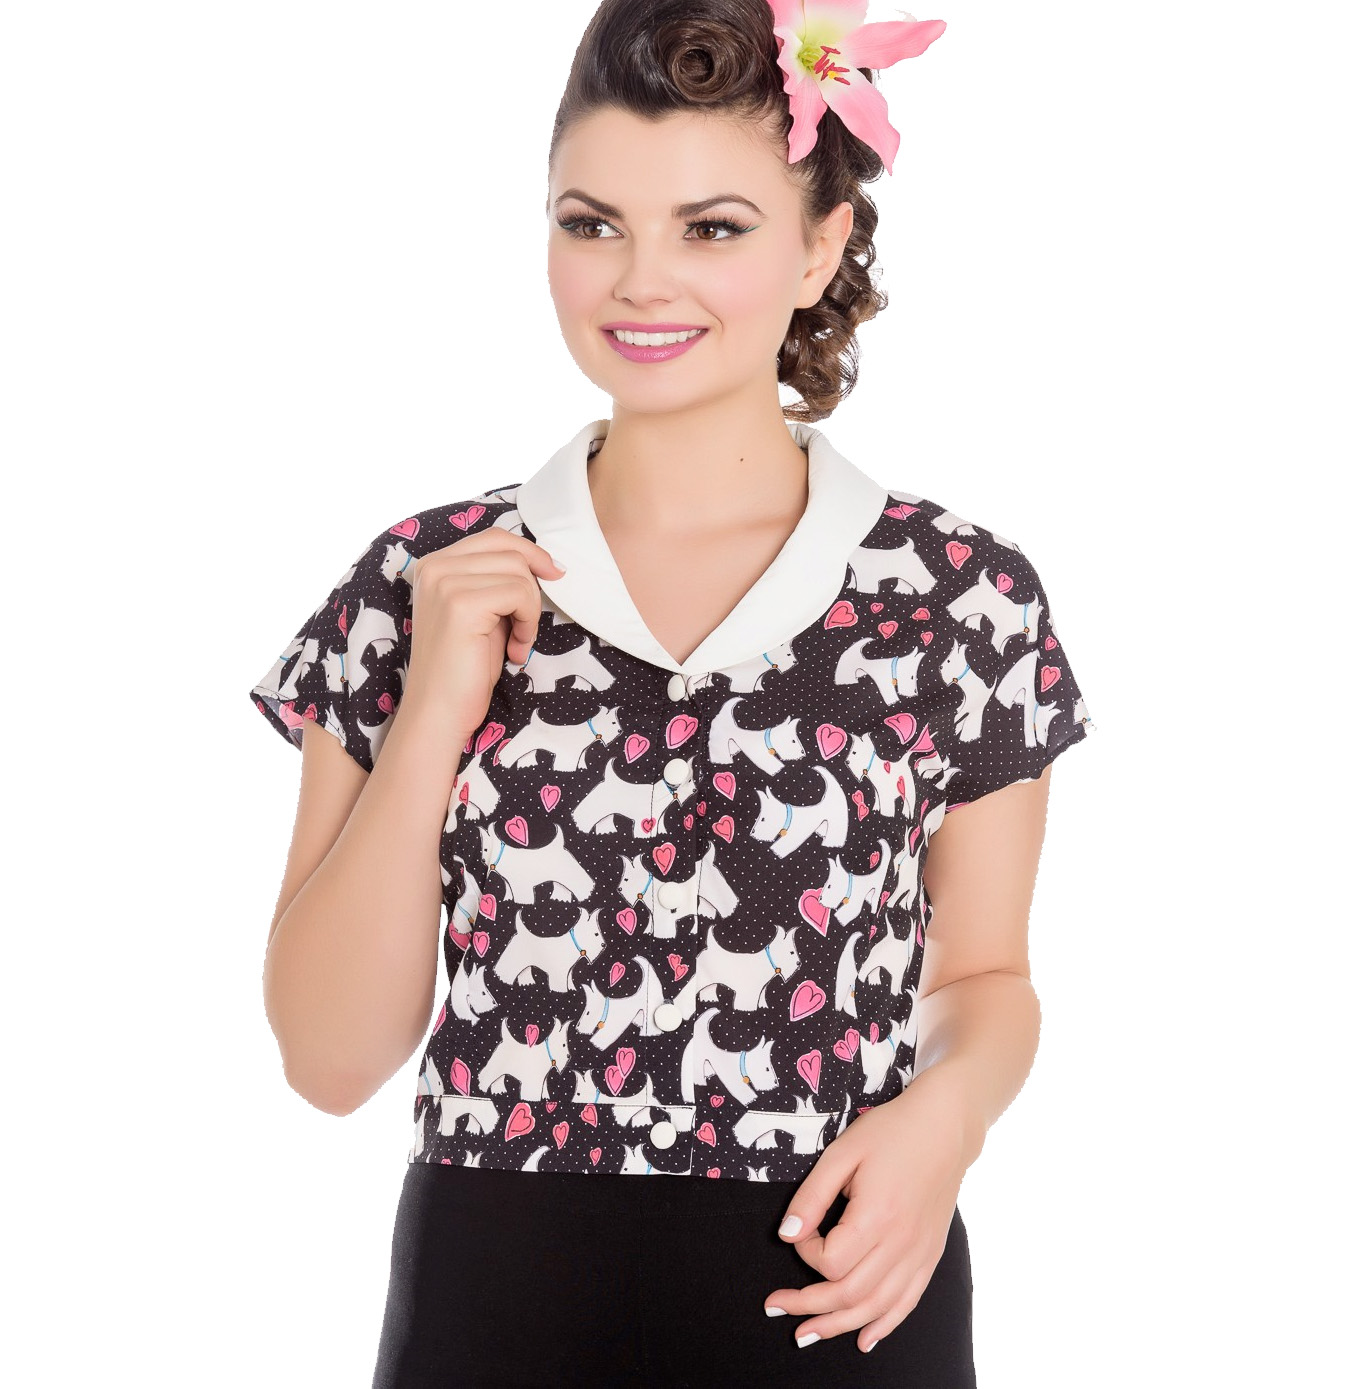 Hell-Bunny-50s-Retro-Top-Scottie-Dog-Heart-AGGY-Cropped-Blouse-Shirt-All-Sizes thumbnail 15